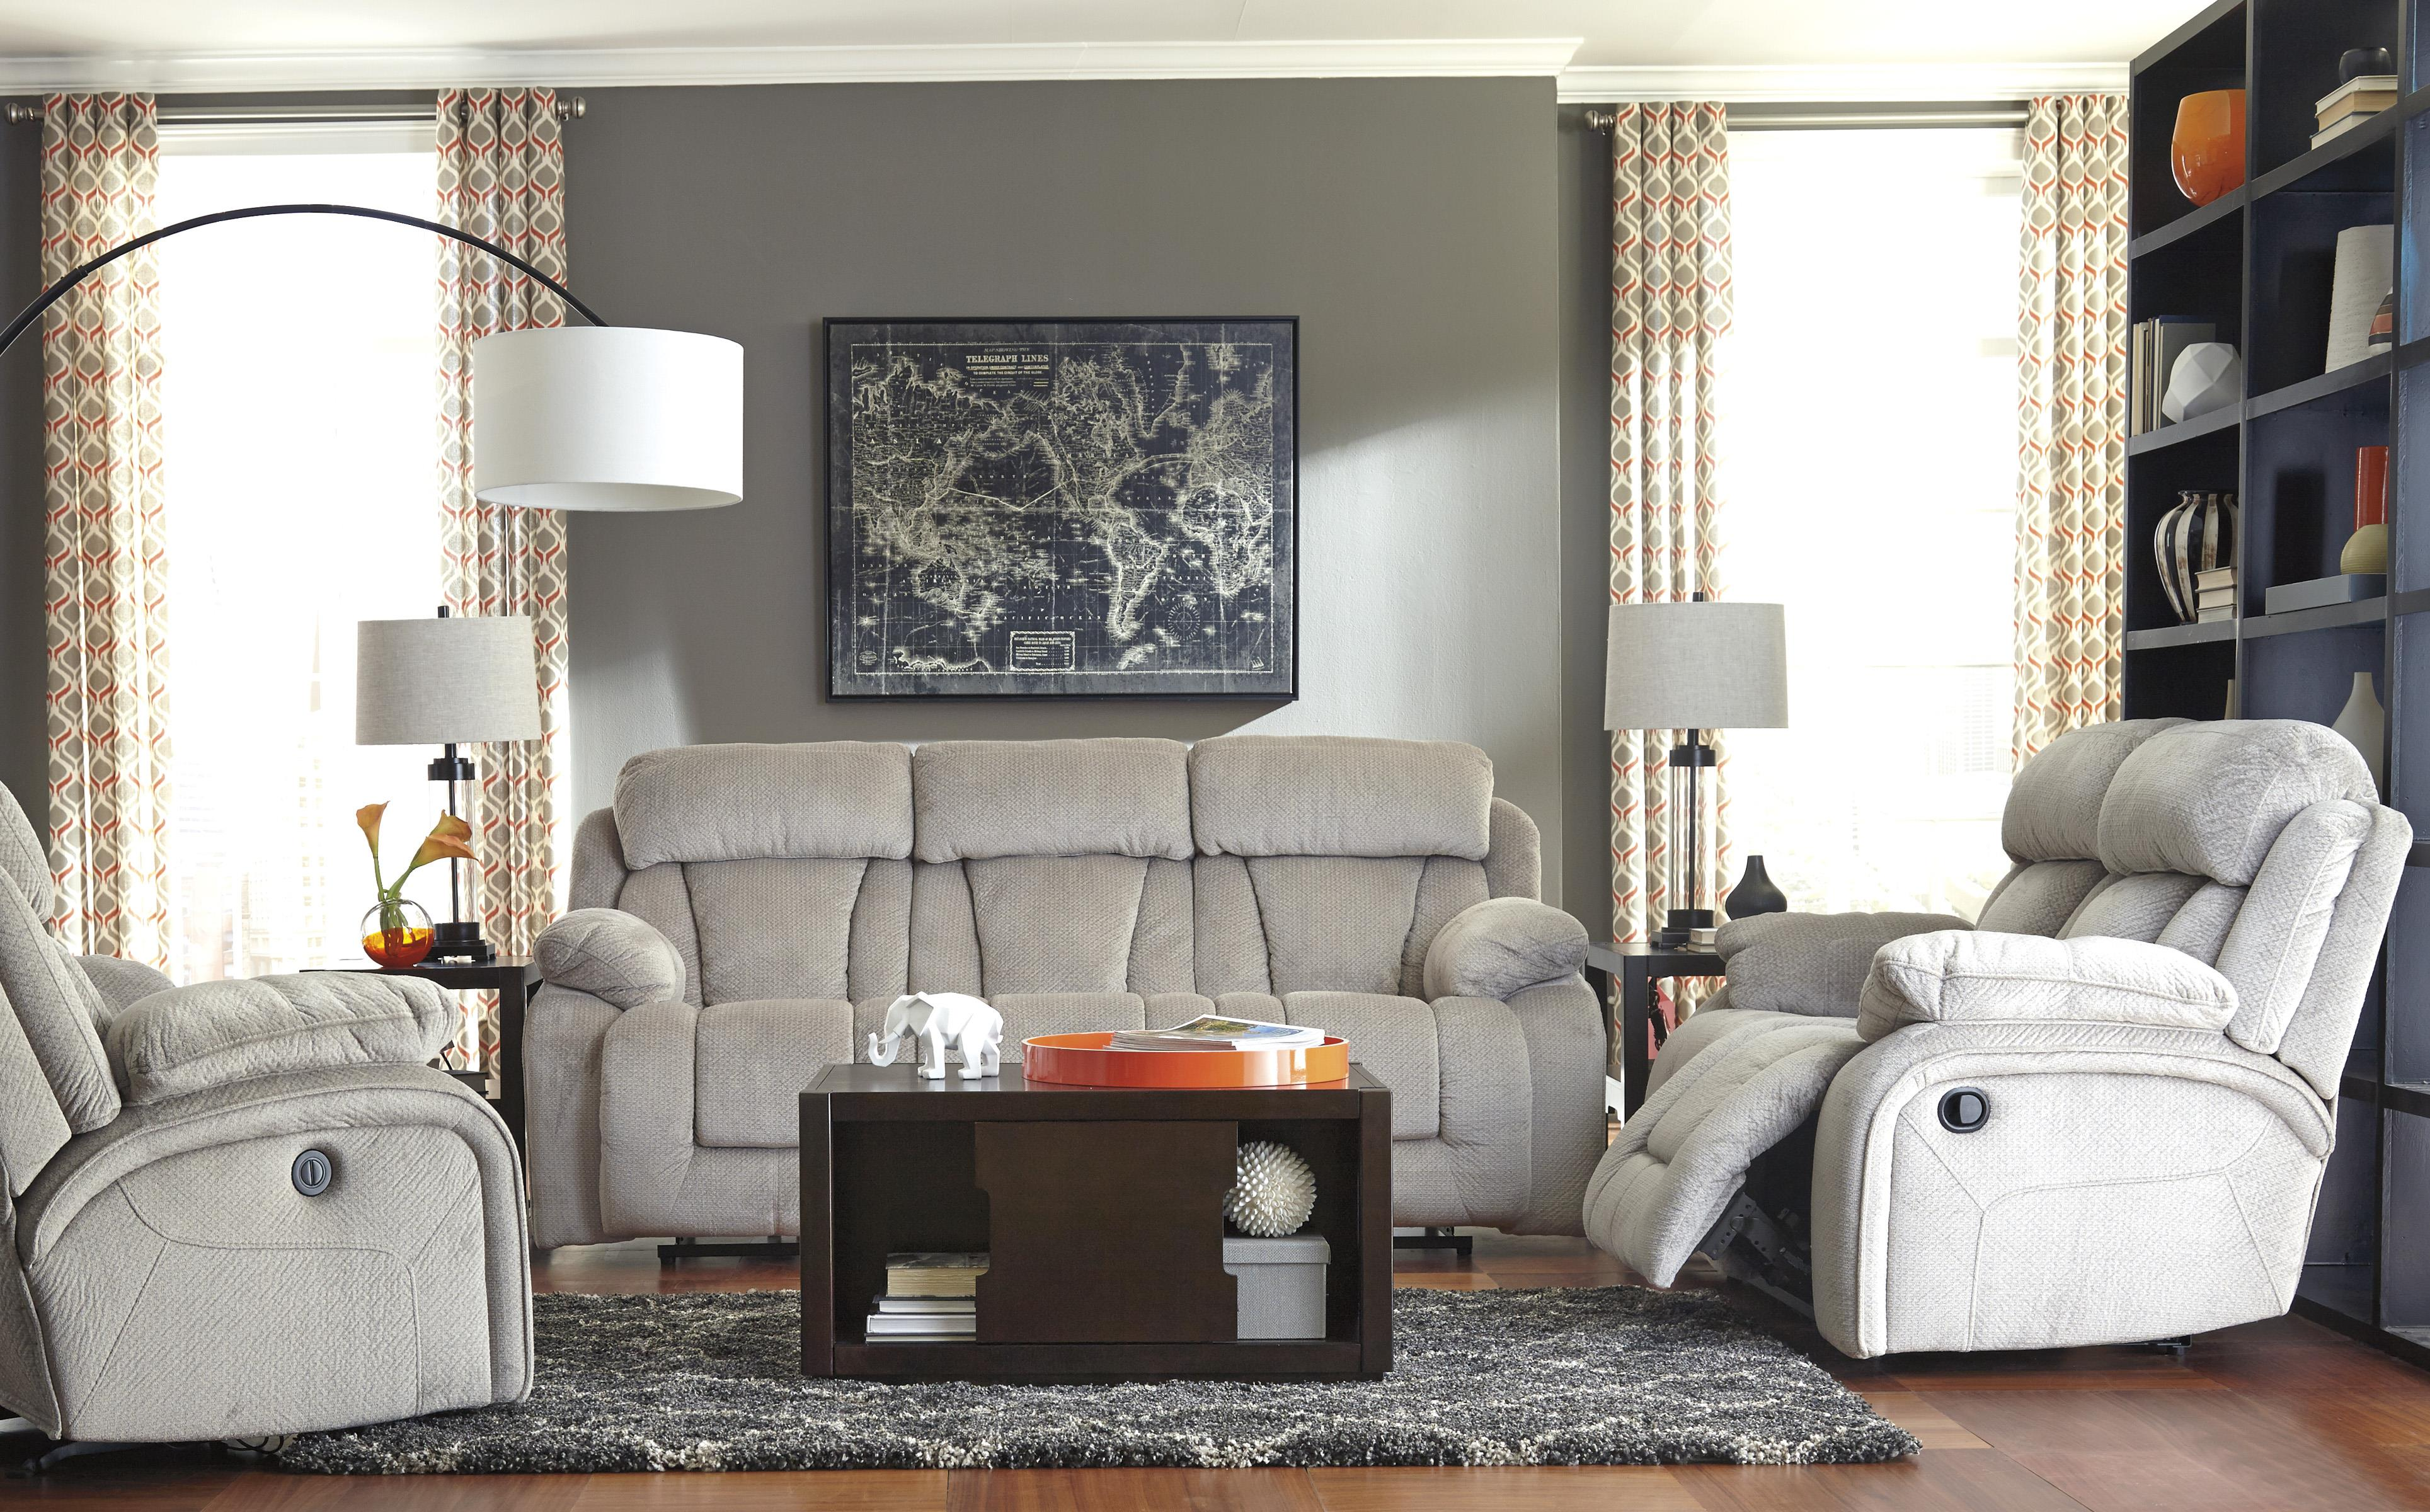 Signature Design by Ashley Stricklin Reclining Living Room Group - Item Number: 86504 Living Room Group 4